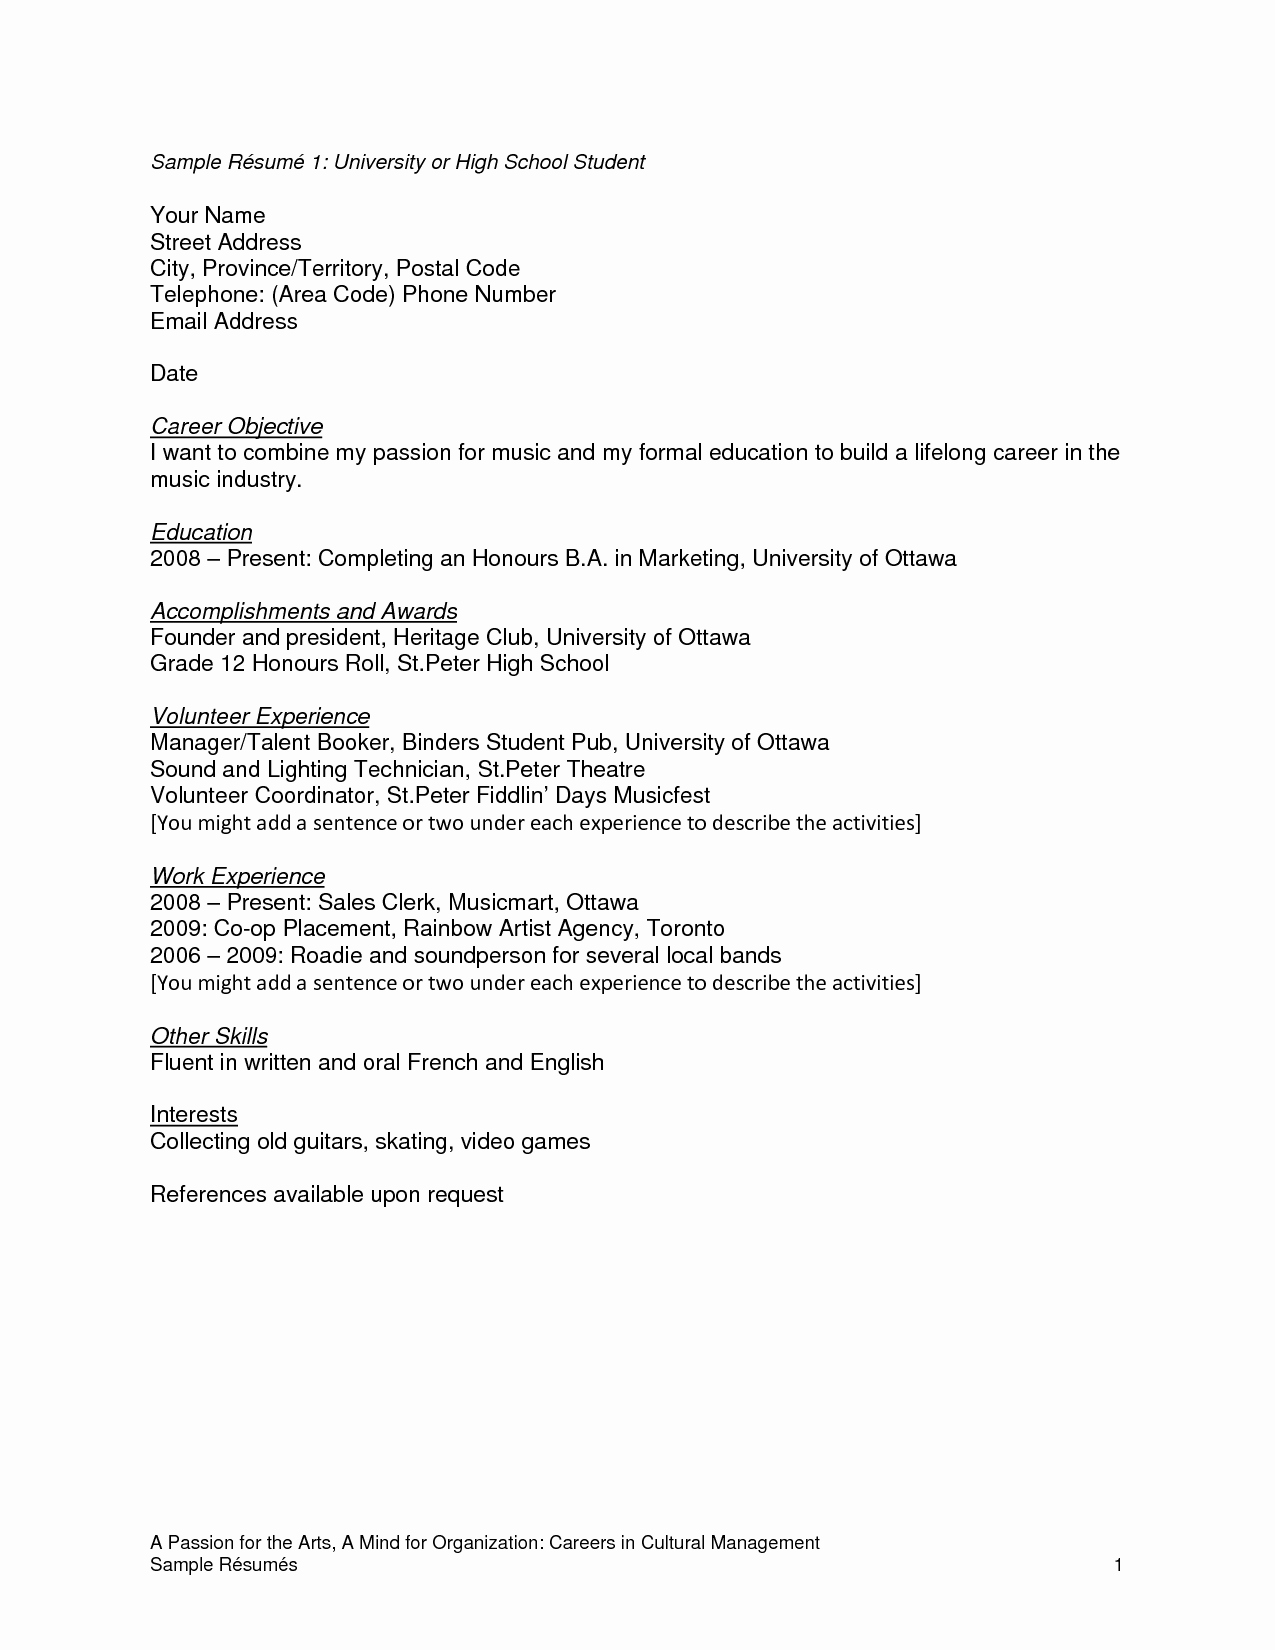 High School Student Resume Examples Unique Pin by Resumejob On Resume Job